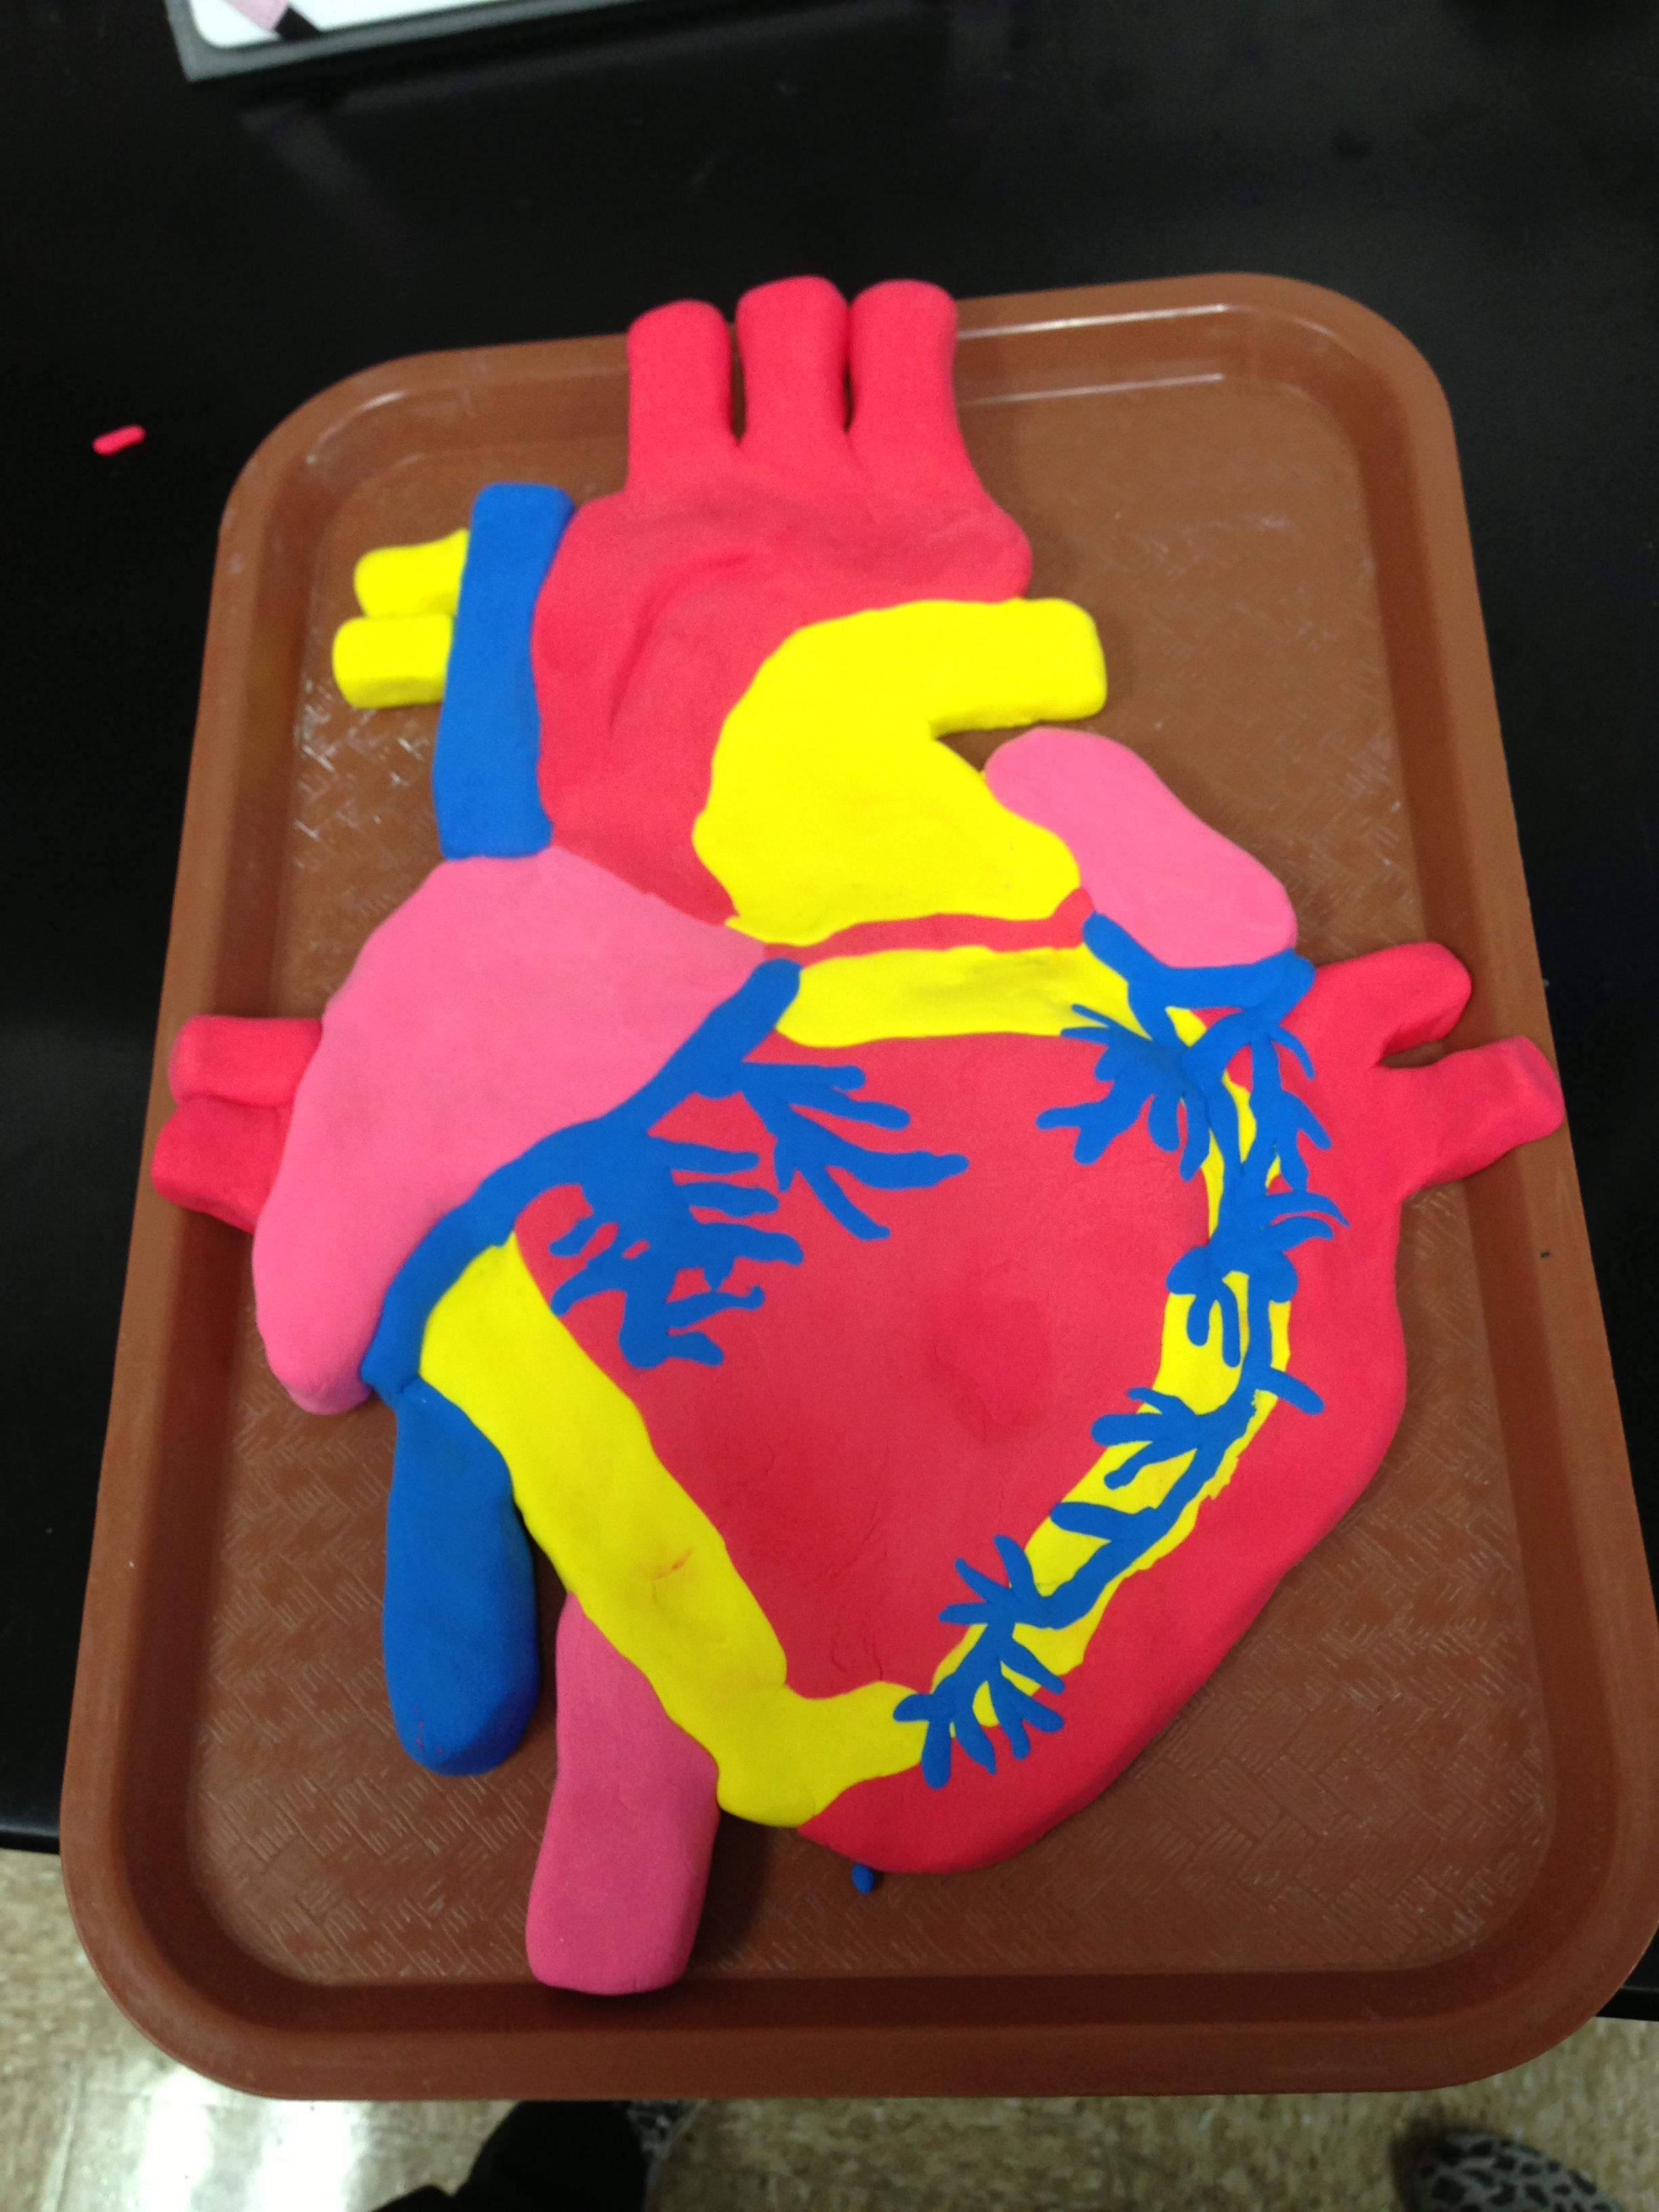 For The Kinesthetic Learner A Clay Model Of The Heart